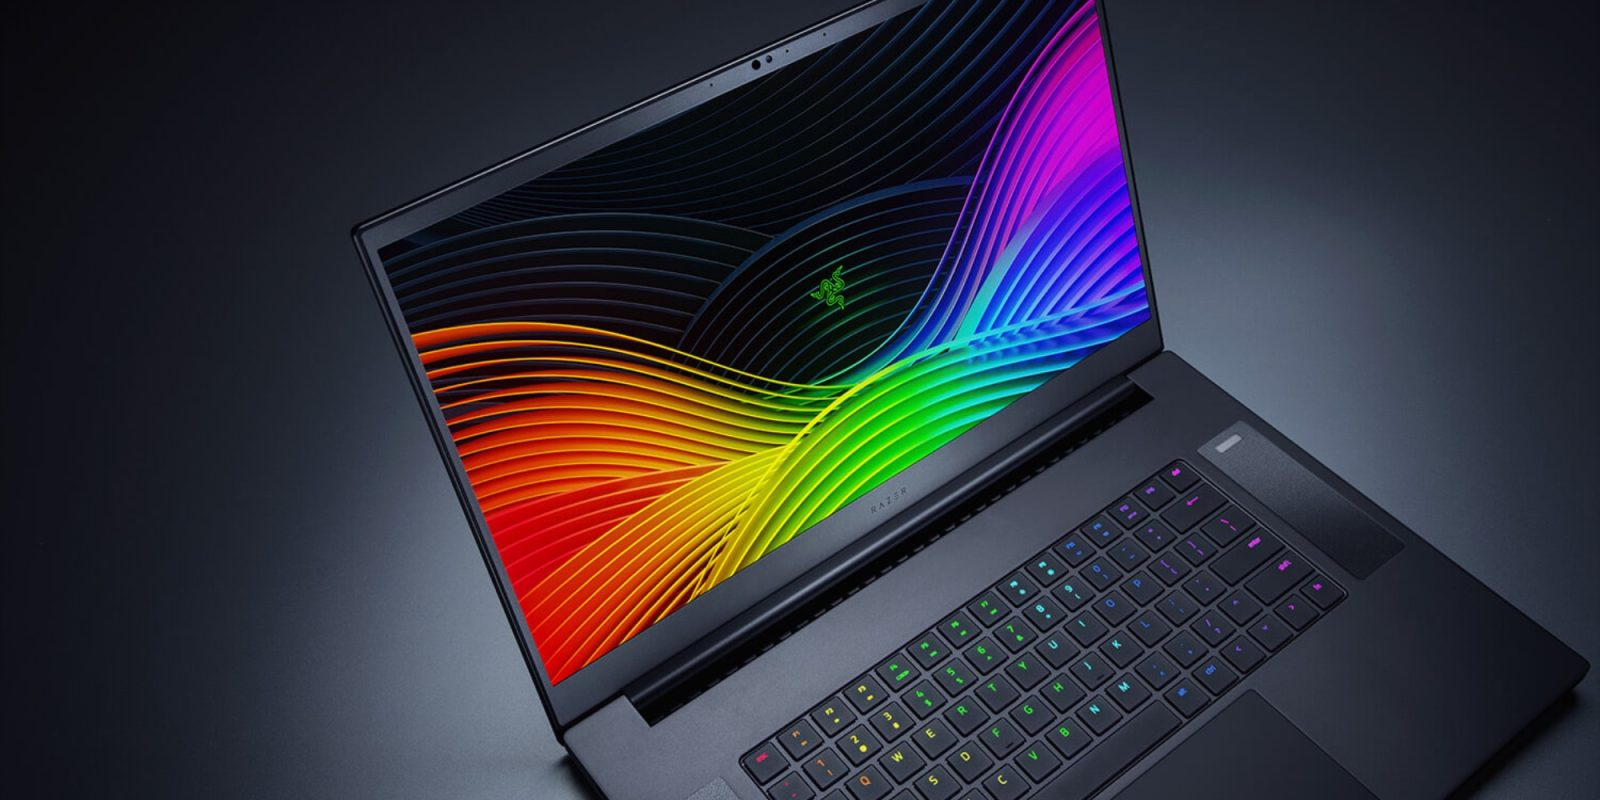 Save $500 and score an all-time low on Razer's Blade Pro 17 Gaming Laptop